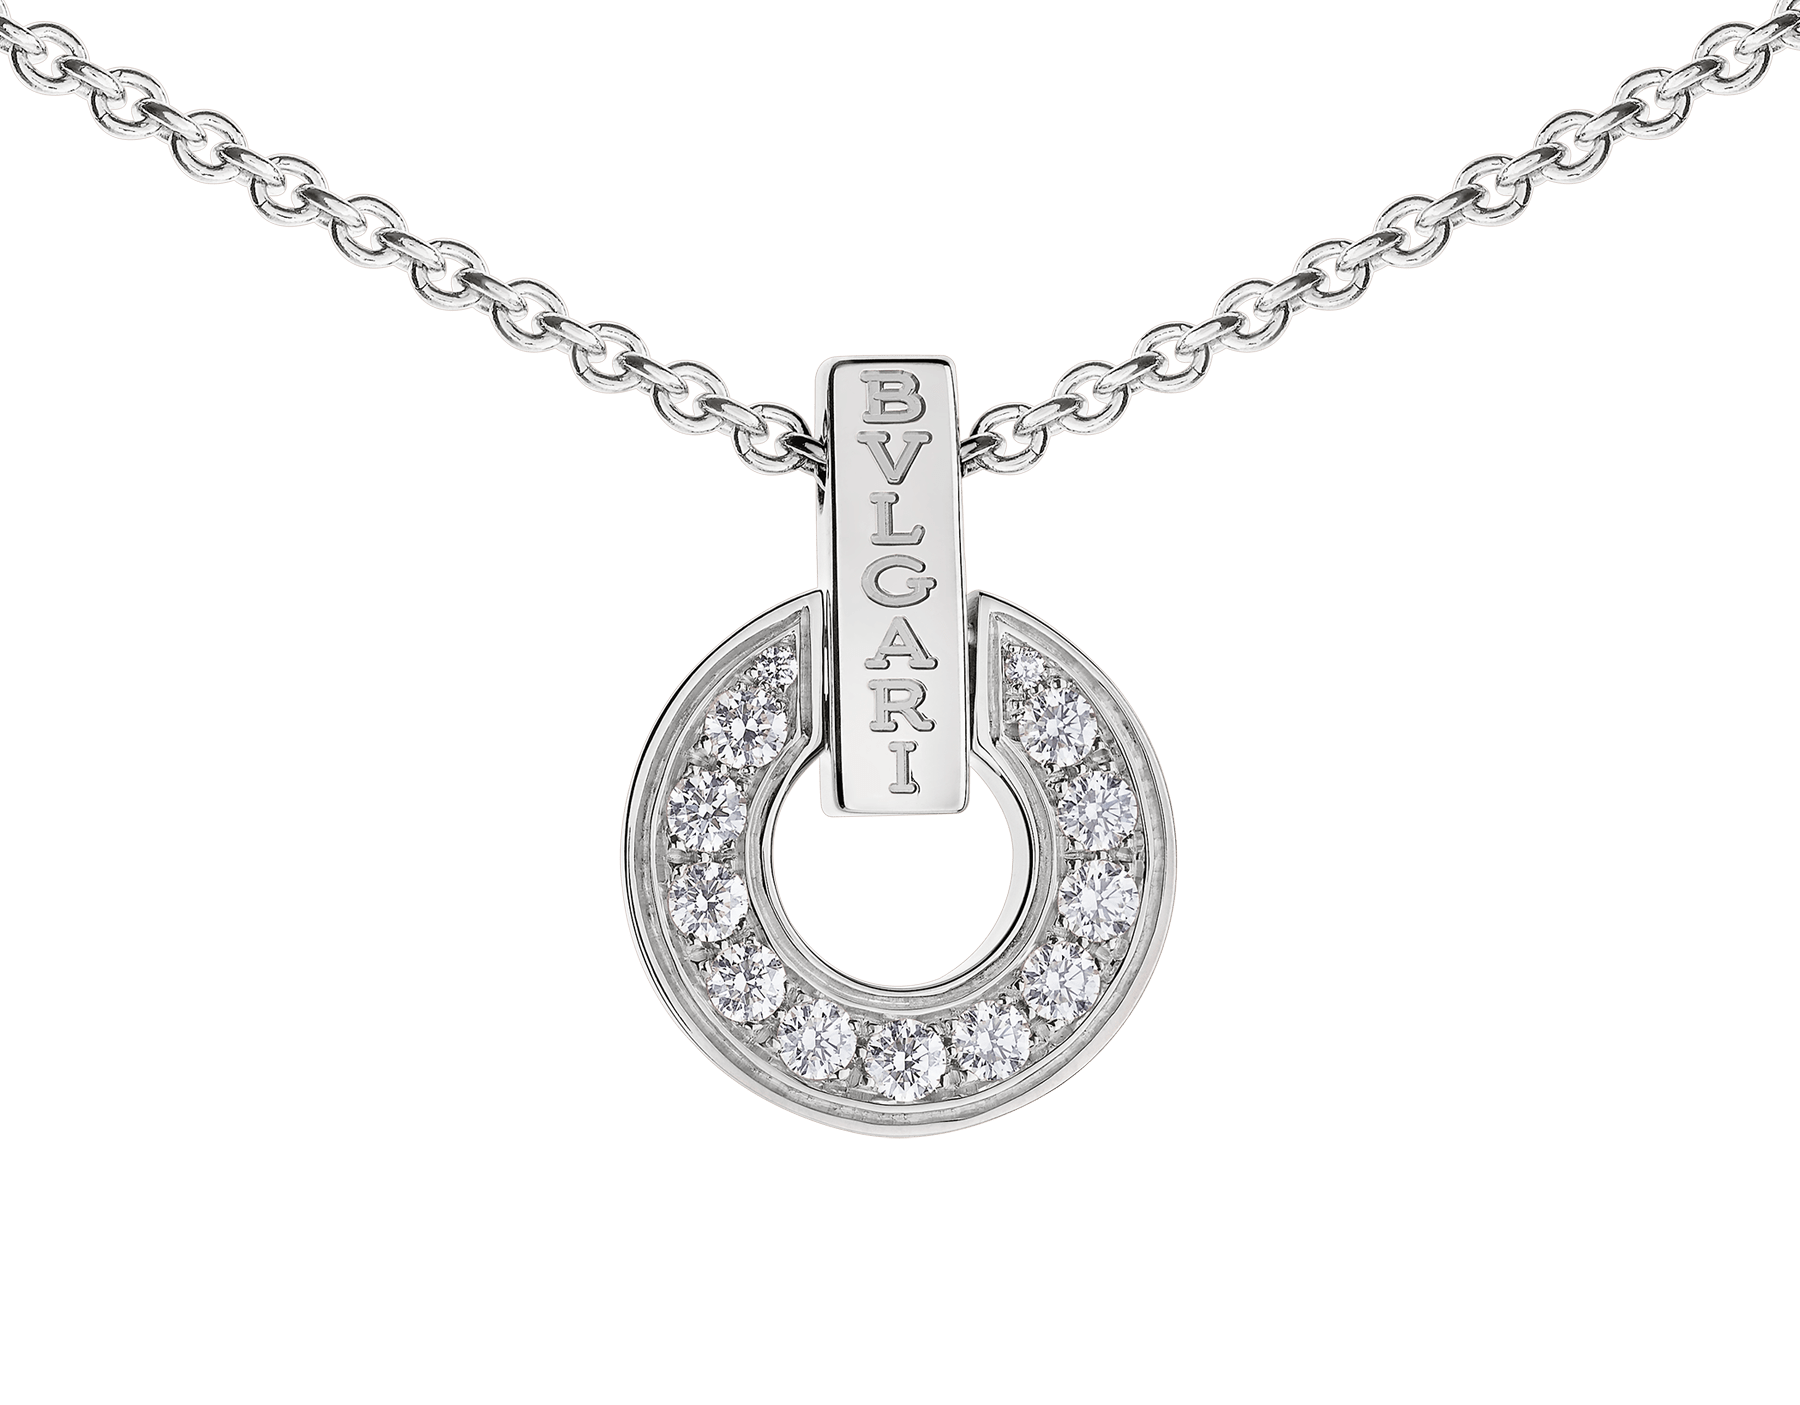 BVLGARI BVLGARI openwork 18 kt white gold necklace set with full pavé diamonds on the pendant 357938 image 3